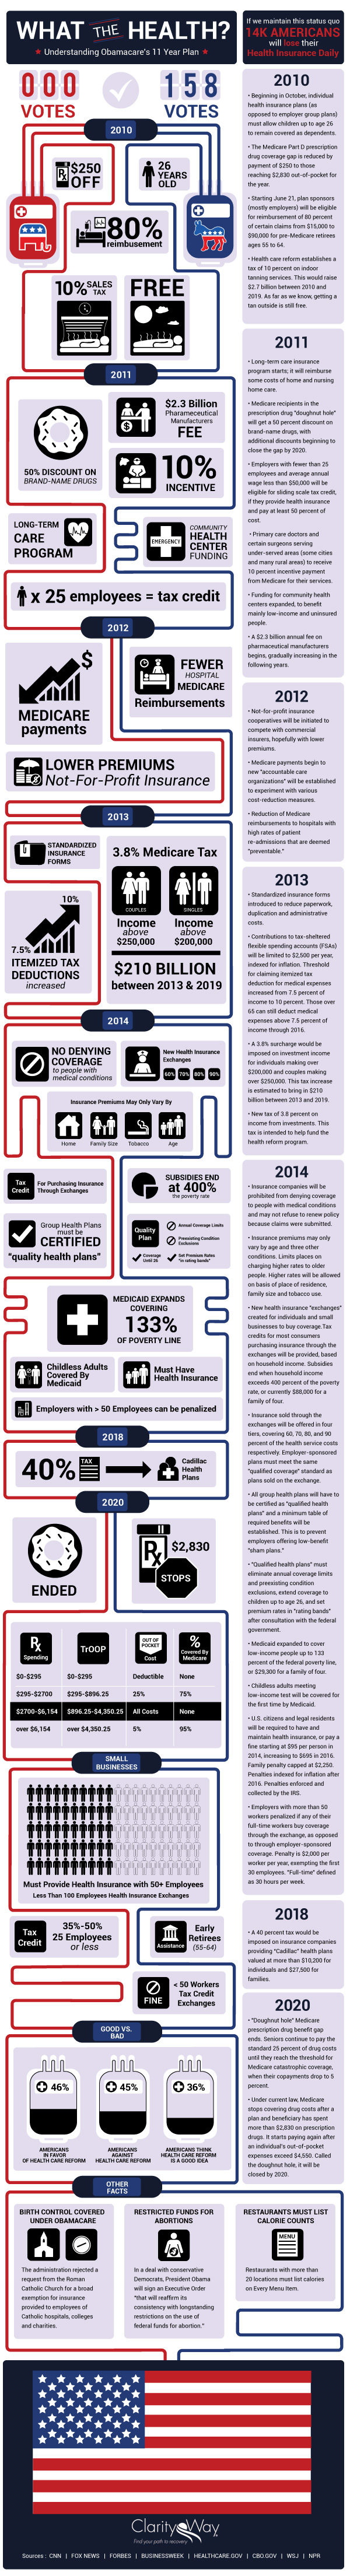 What the Health? Understanding Obamacare's 11 Year Health Plan infographic